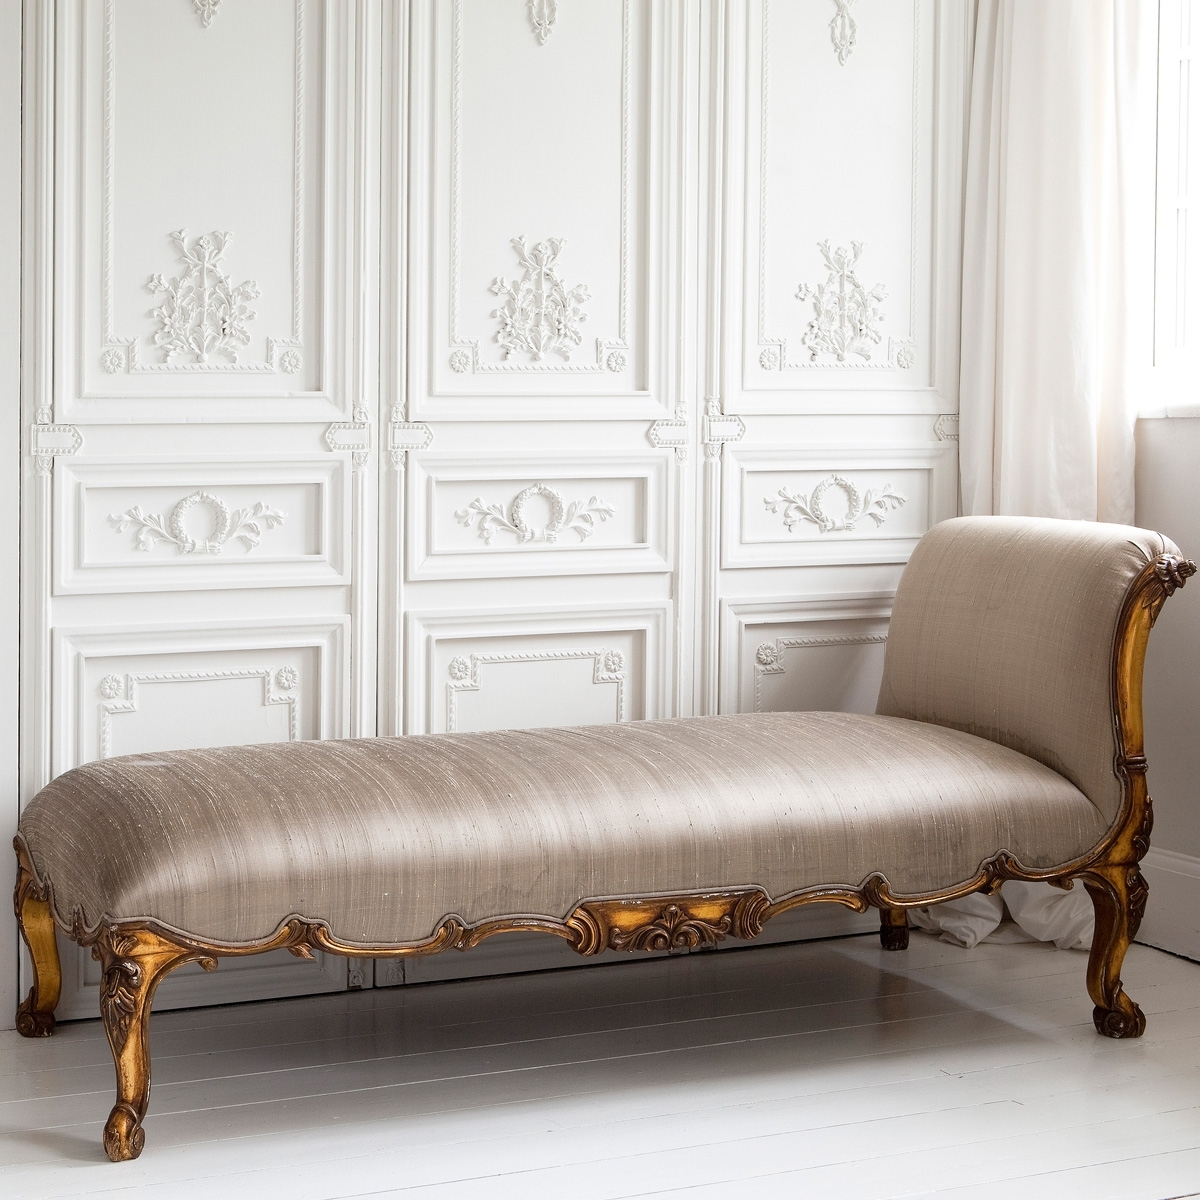 Most Recent Chaise Lounge For Bedroom – Internetunblock – Internetunblock Intended For Chaise Lounges For Bedroom (View 11 of 15)